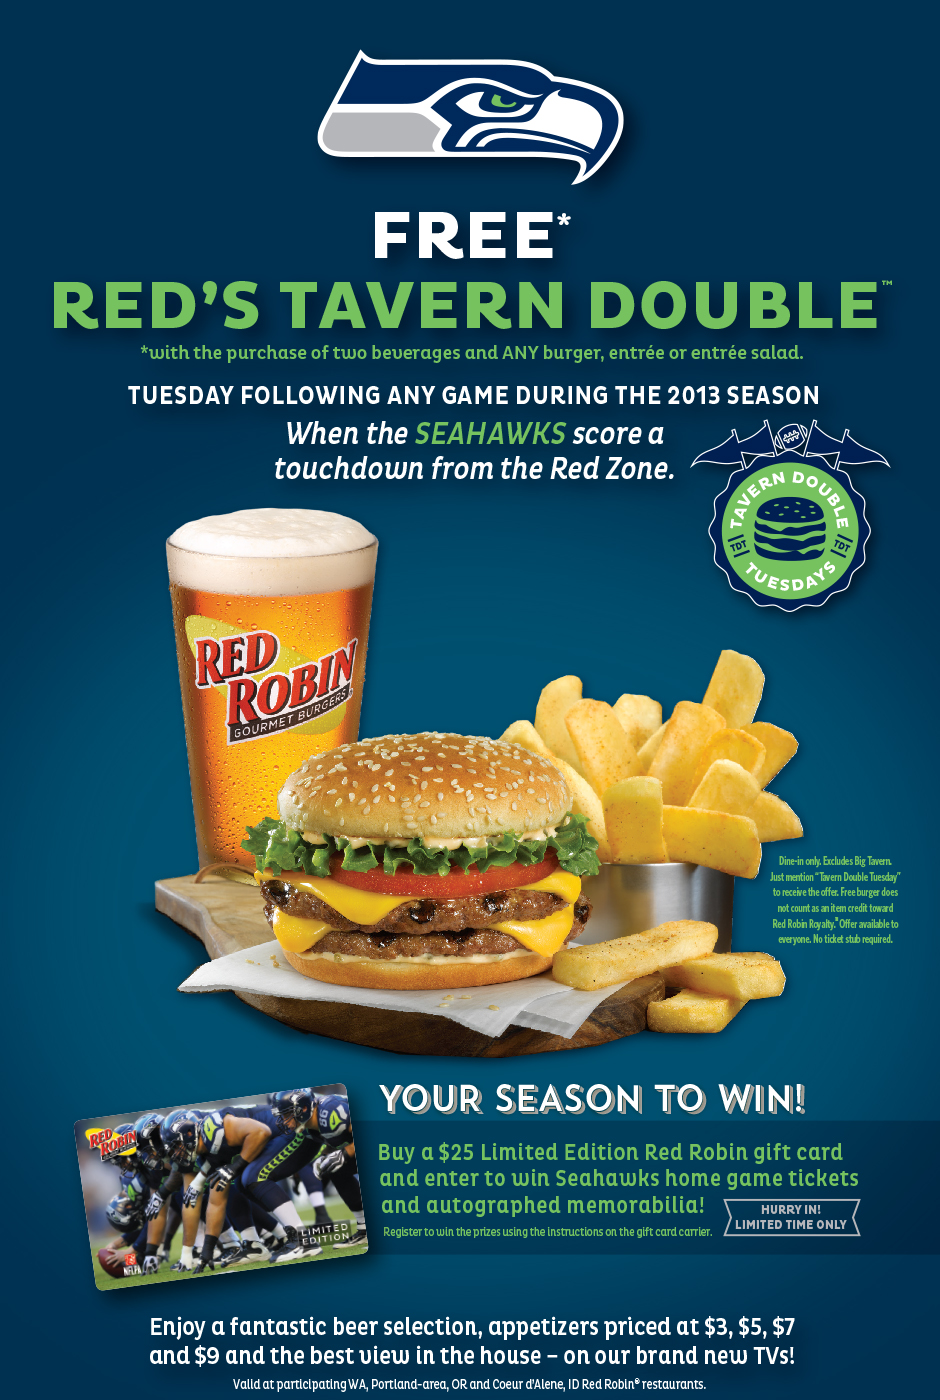 red robin pay stub Another 12th Man Deal: Free Red Robin Tavern Double Burger (With ...